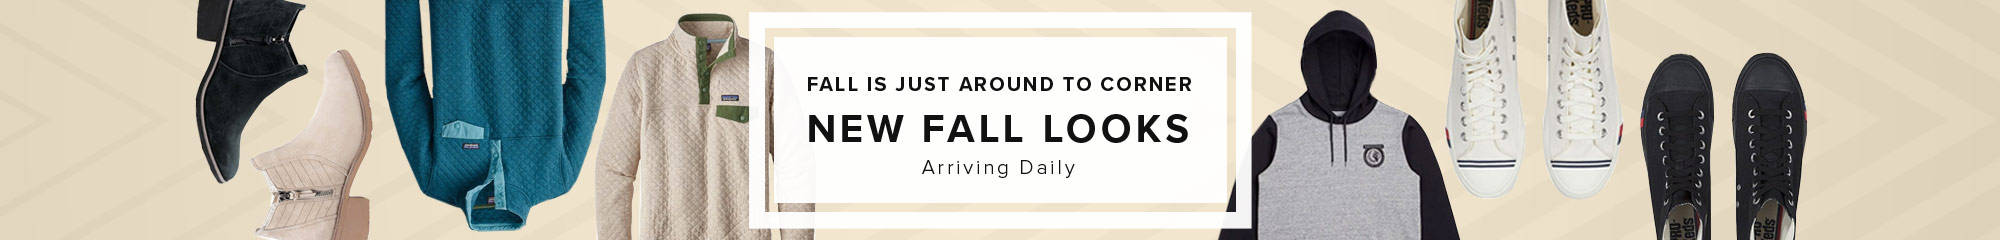 Fall Fashion for chilly days. Shop sweaters, jackets, boots and more